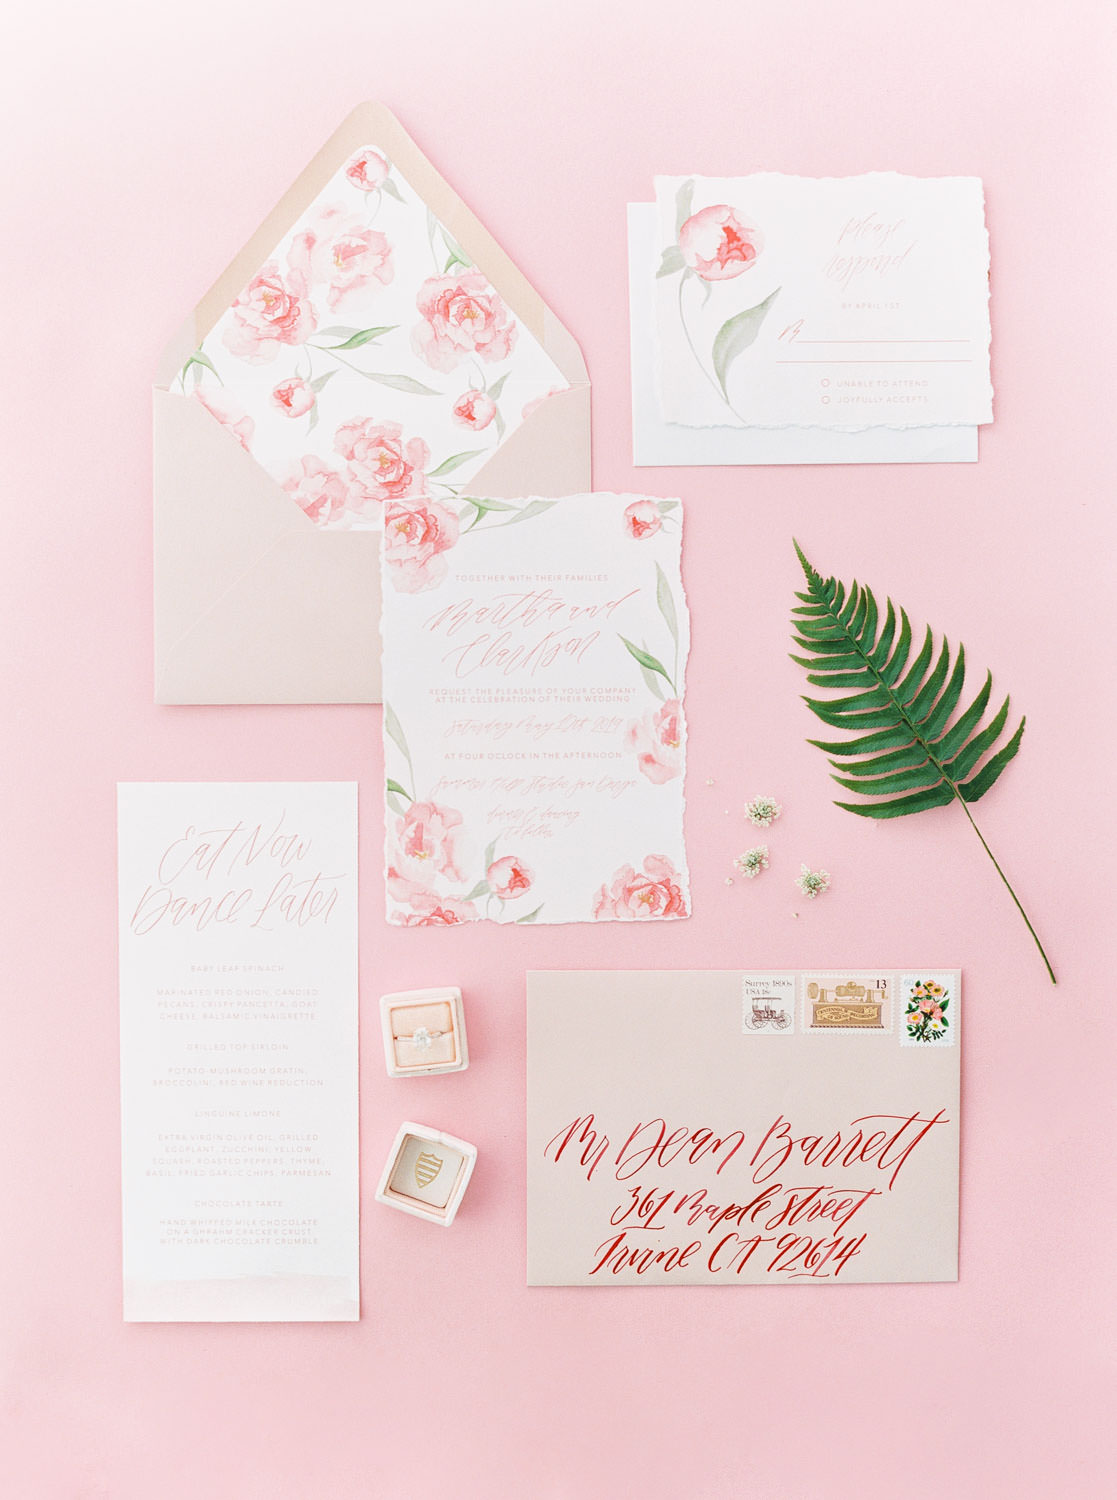 Pink and white and green floral watercolor wedding invitation suite with flower envelope liner, Pink backdrop wedding editorial on medium format Contax 645 Fuji 400h film by Cavin Elizabeth Photography